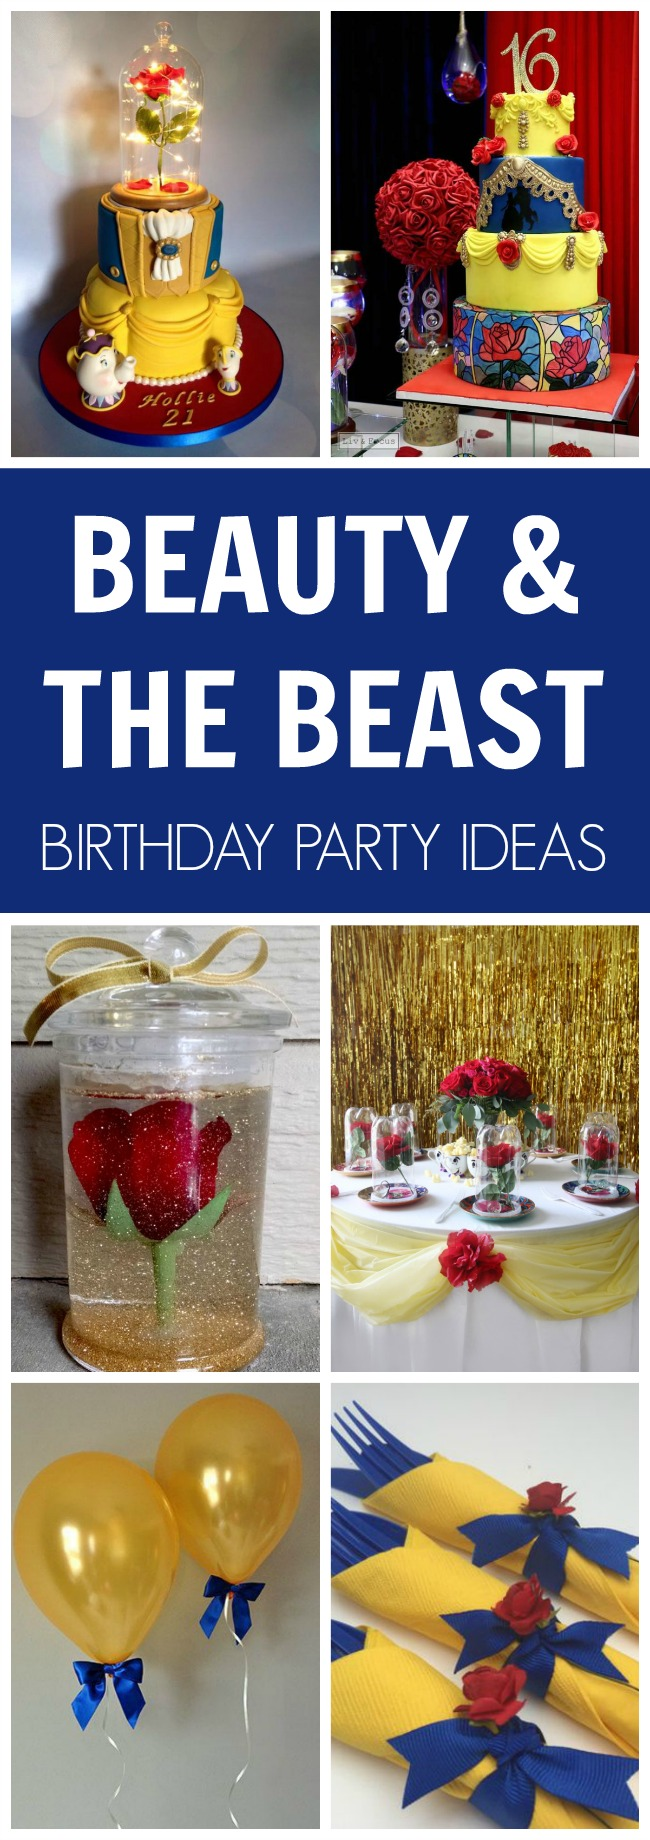 beauty-and-the-beast-party-ideas